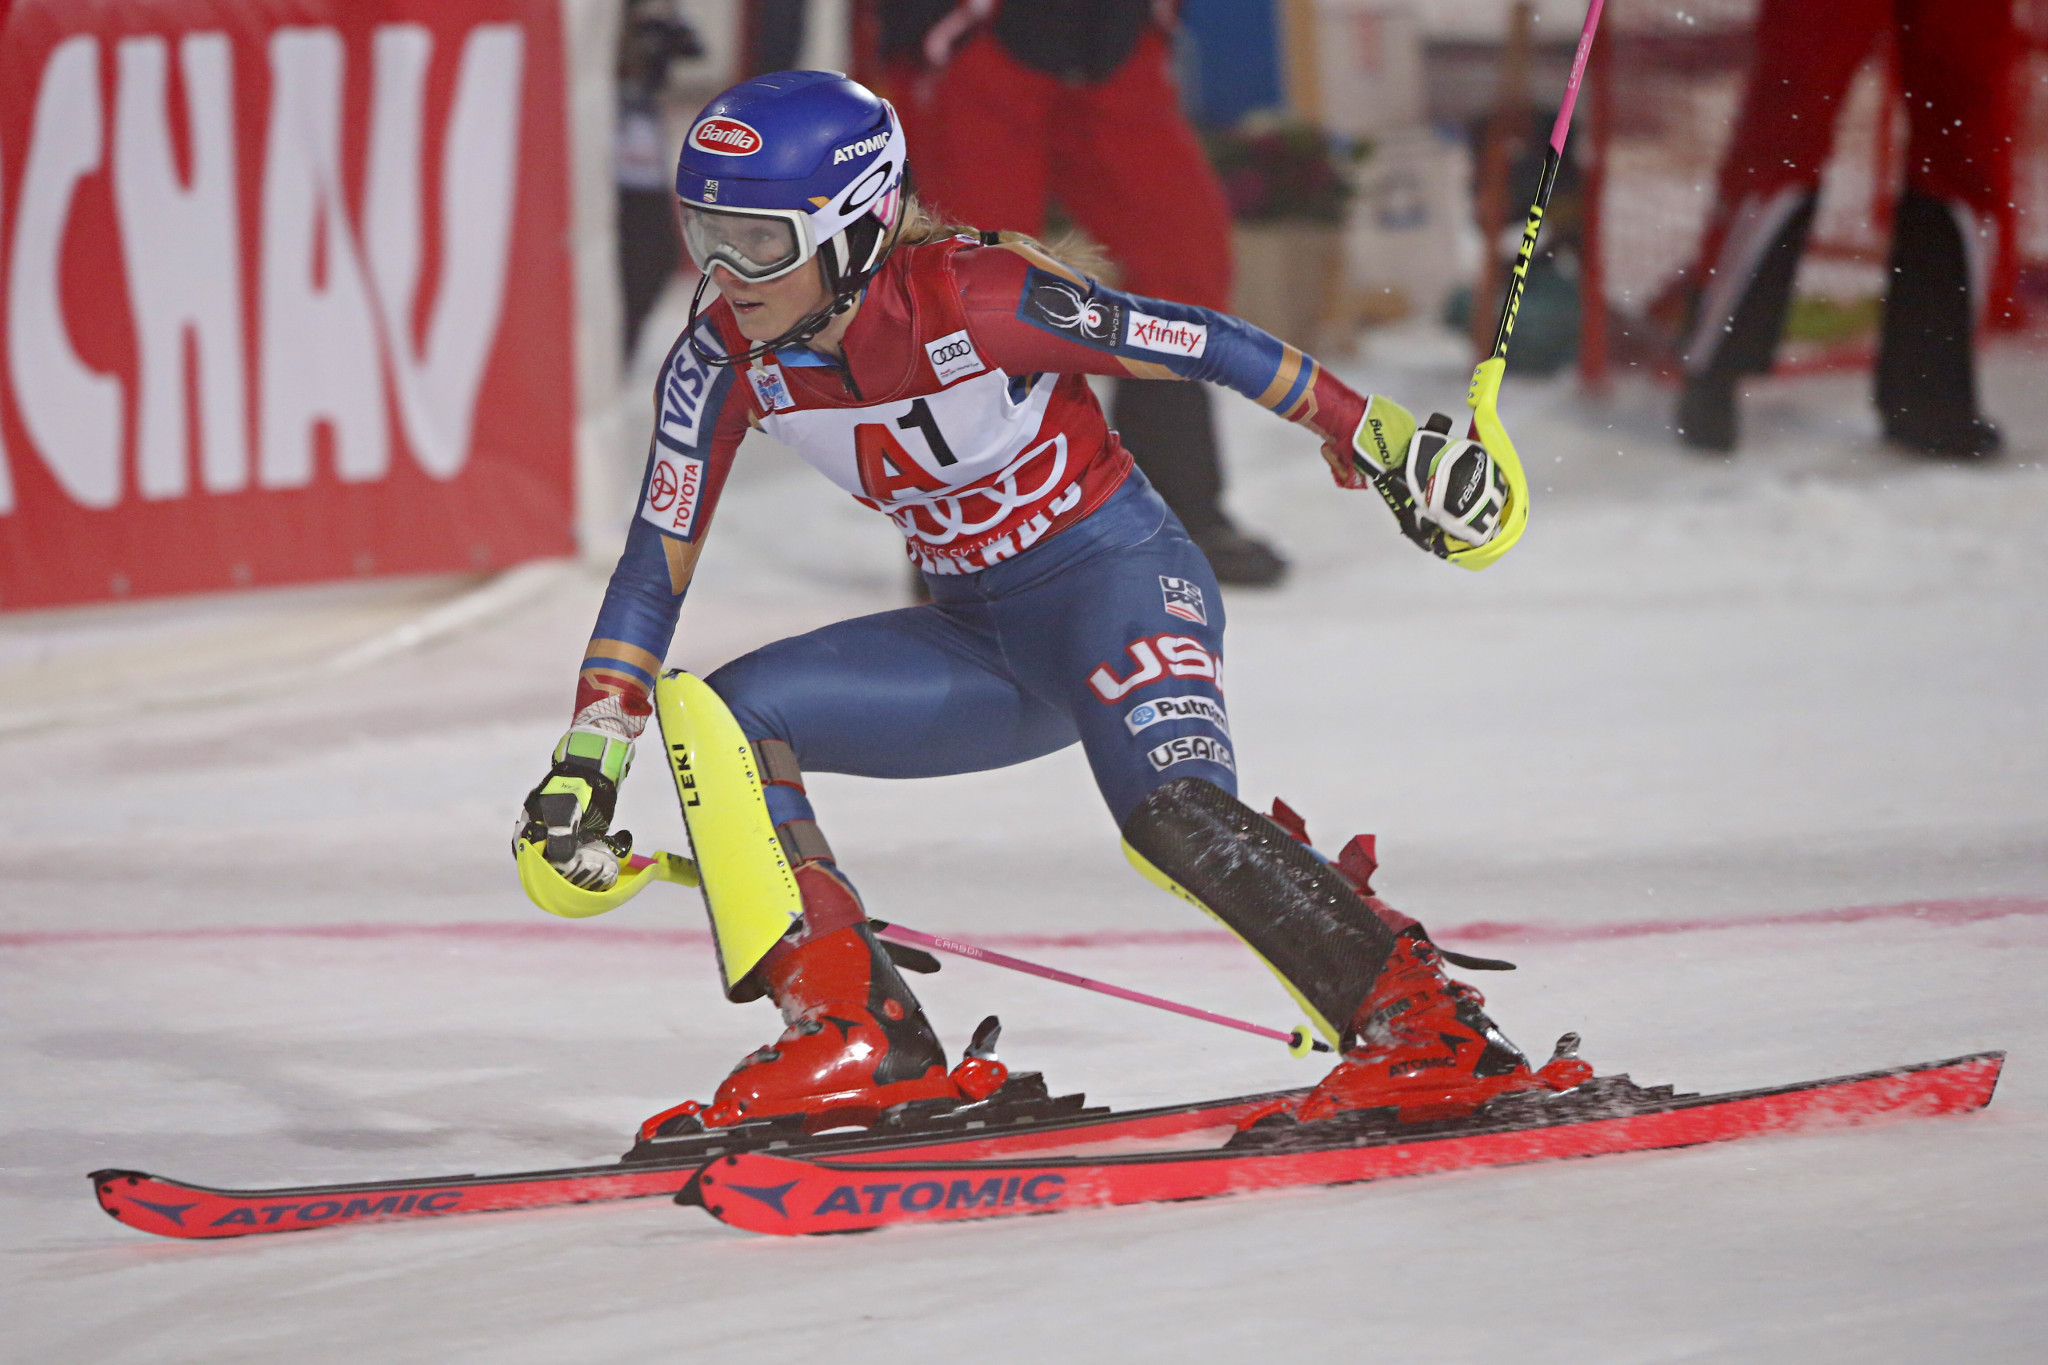 Mikaela Shiffrin posts fifth straight World Cup win